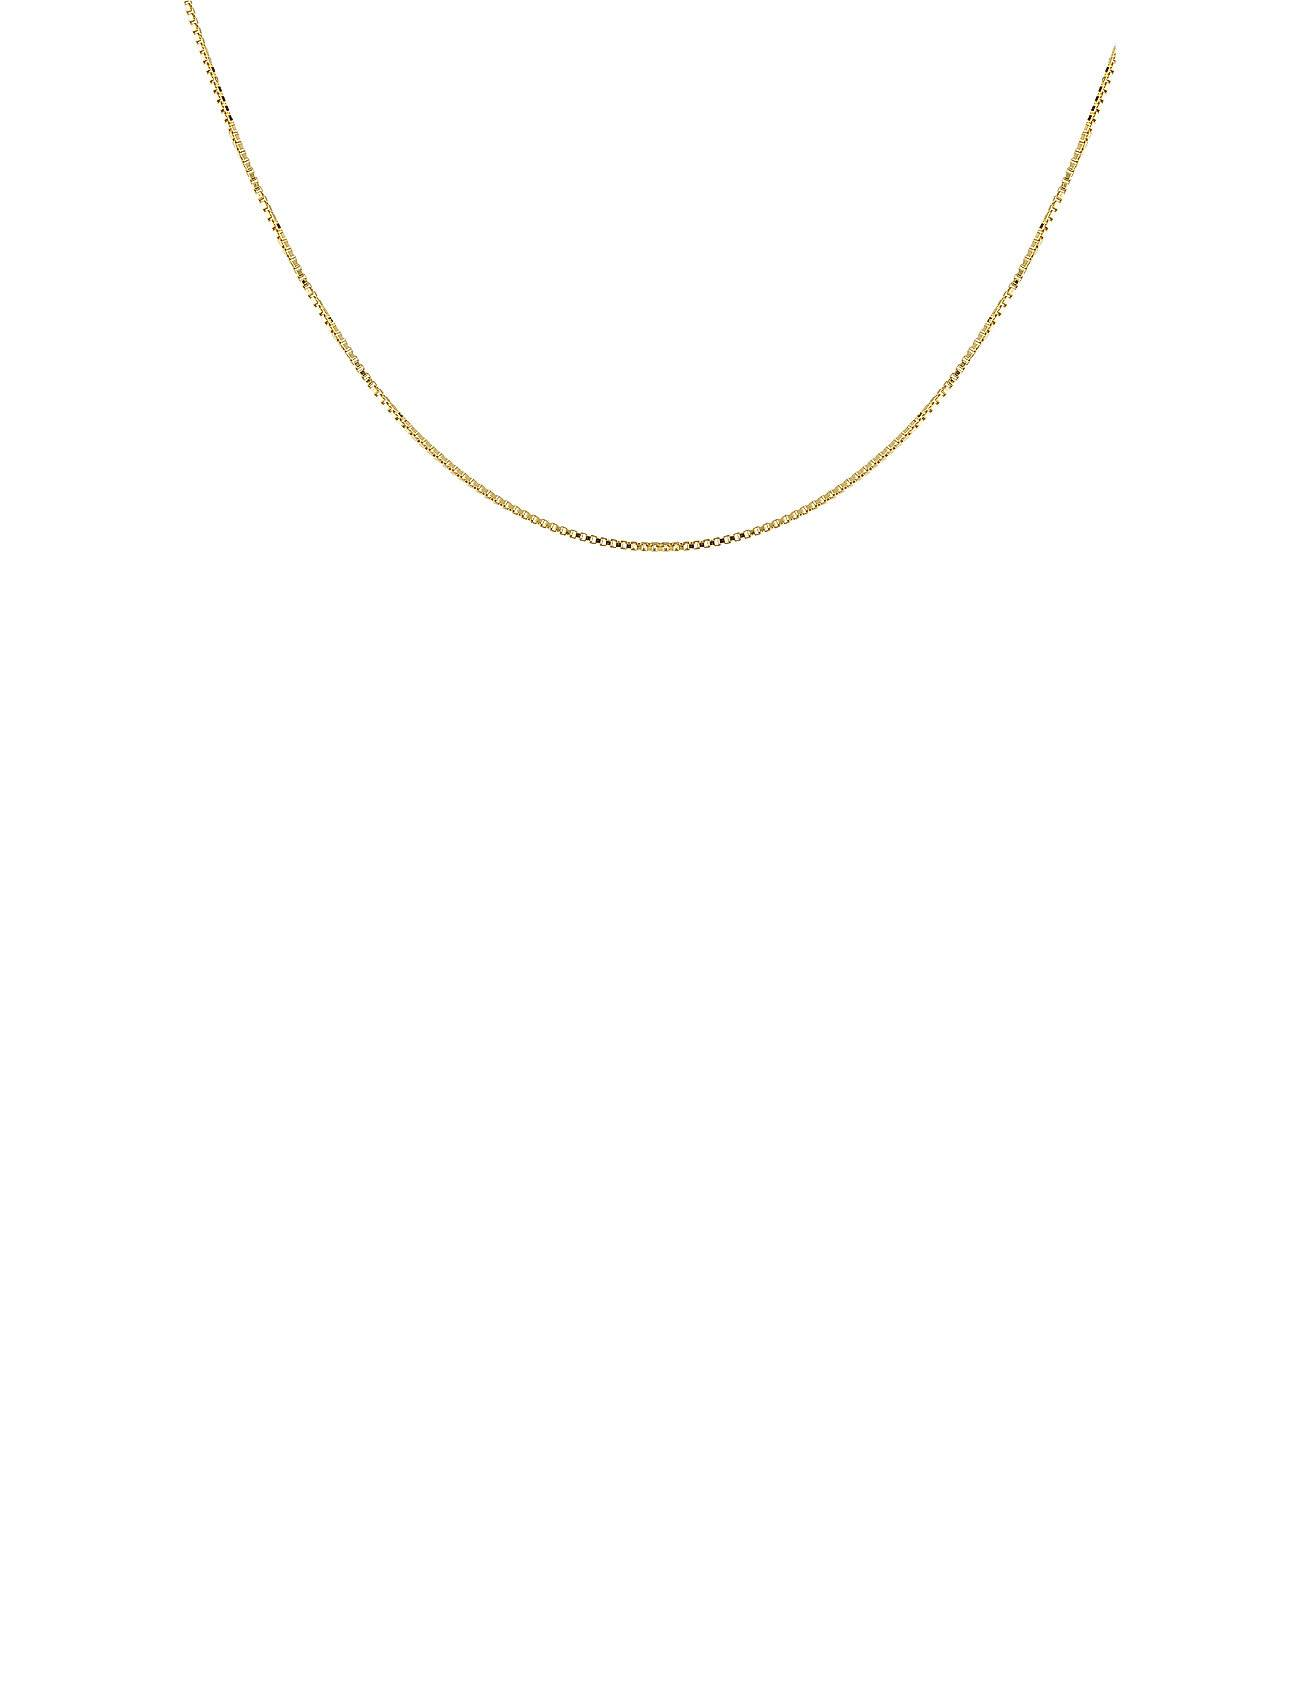 Syster P Beloved Chain Short Gold Accessories Jewellery Necklaces Dainty Necklaces Kulta Syster P